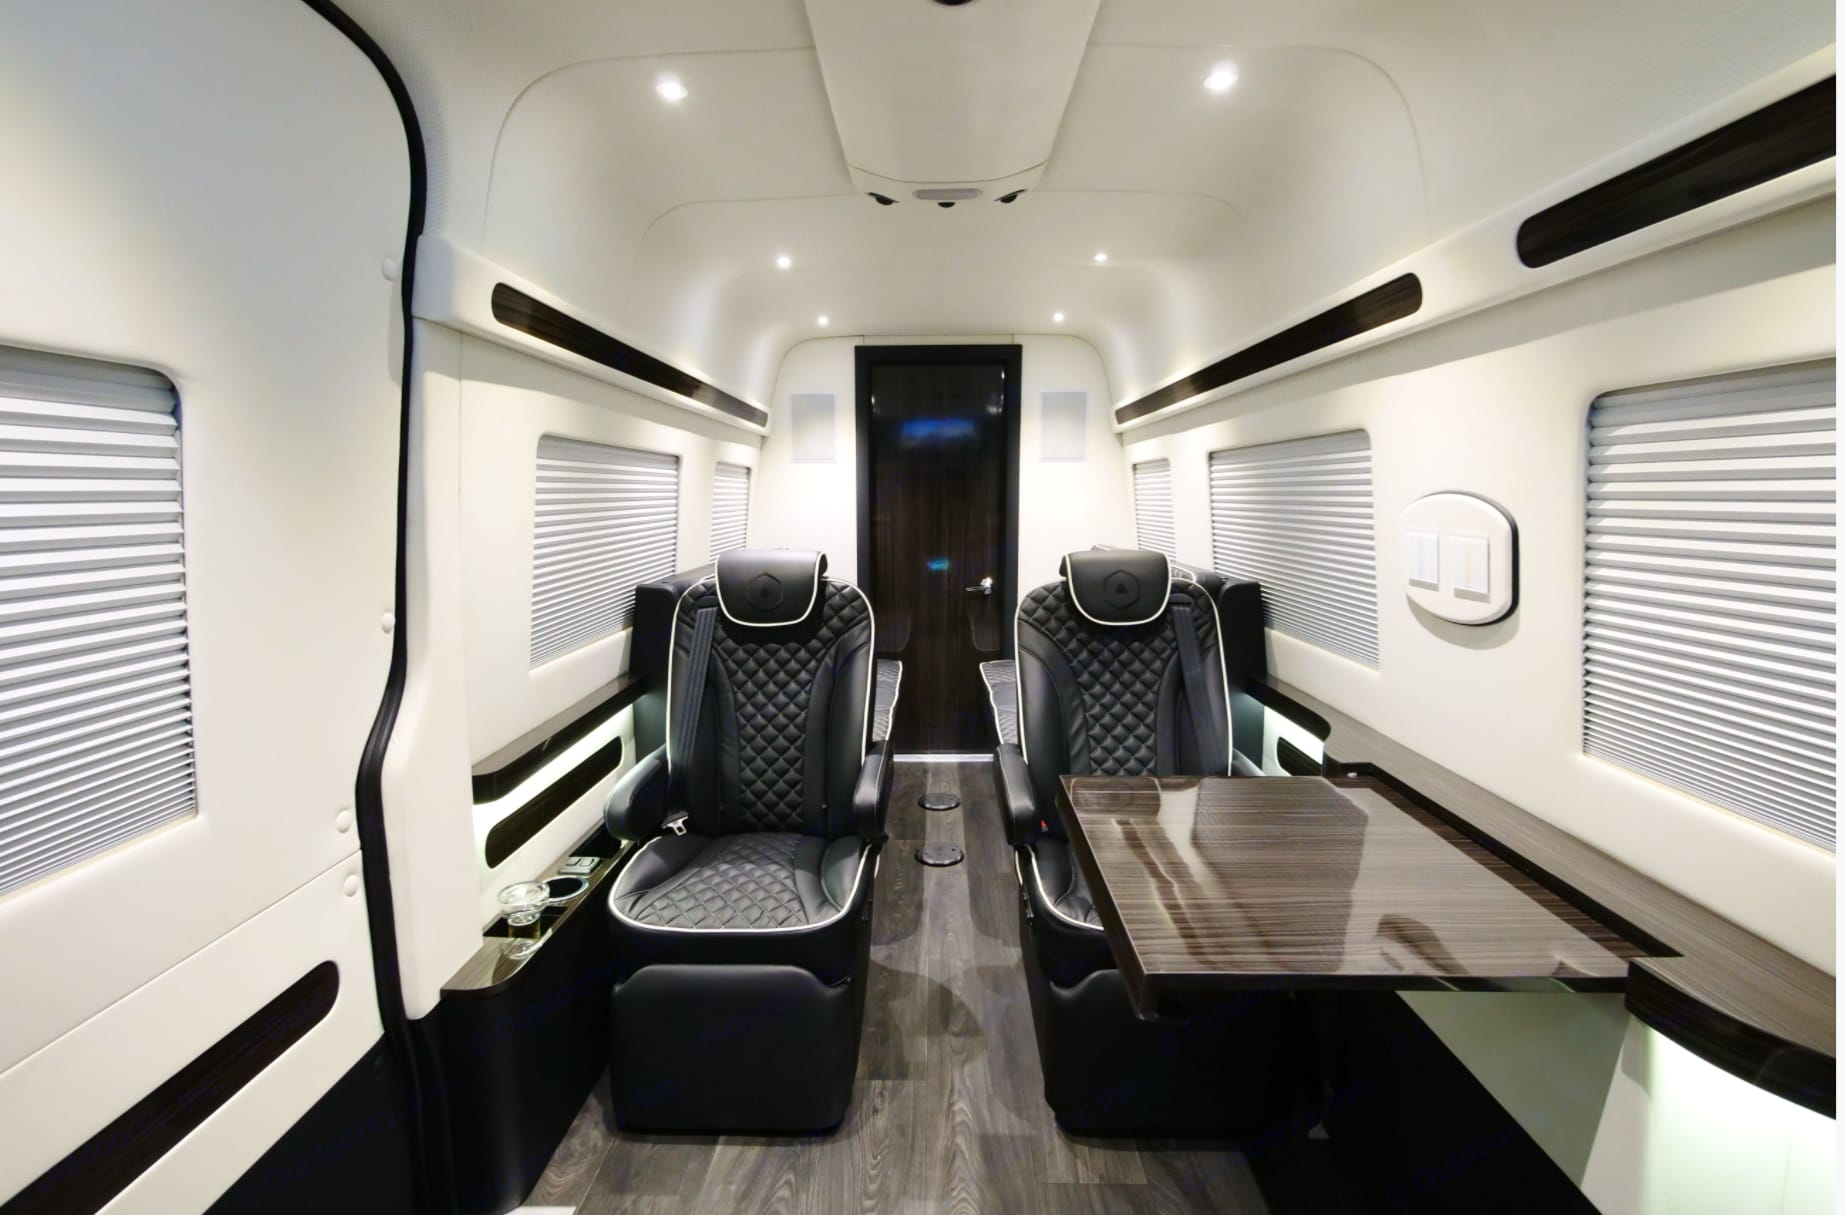 Ready to increase capacity, productivity and creativity on the move.. Mercedes-Benz Custom Coach 2018